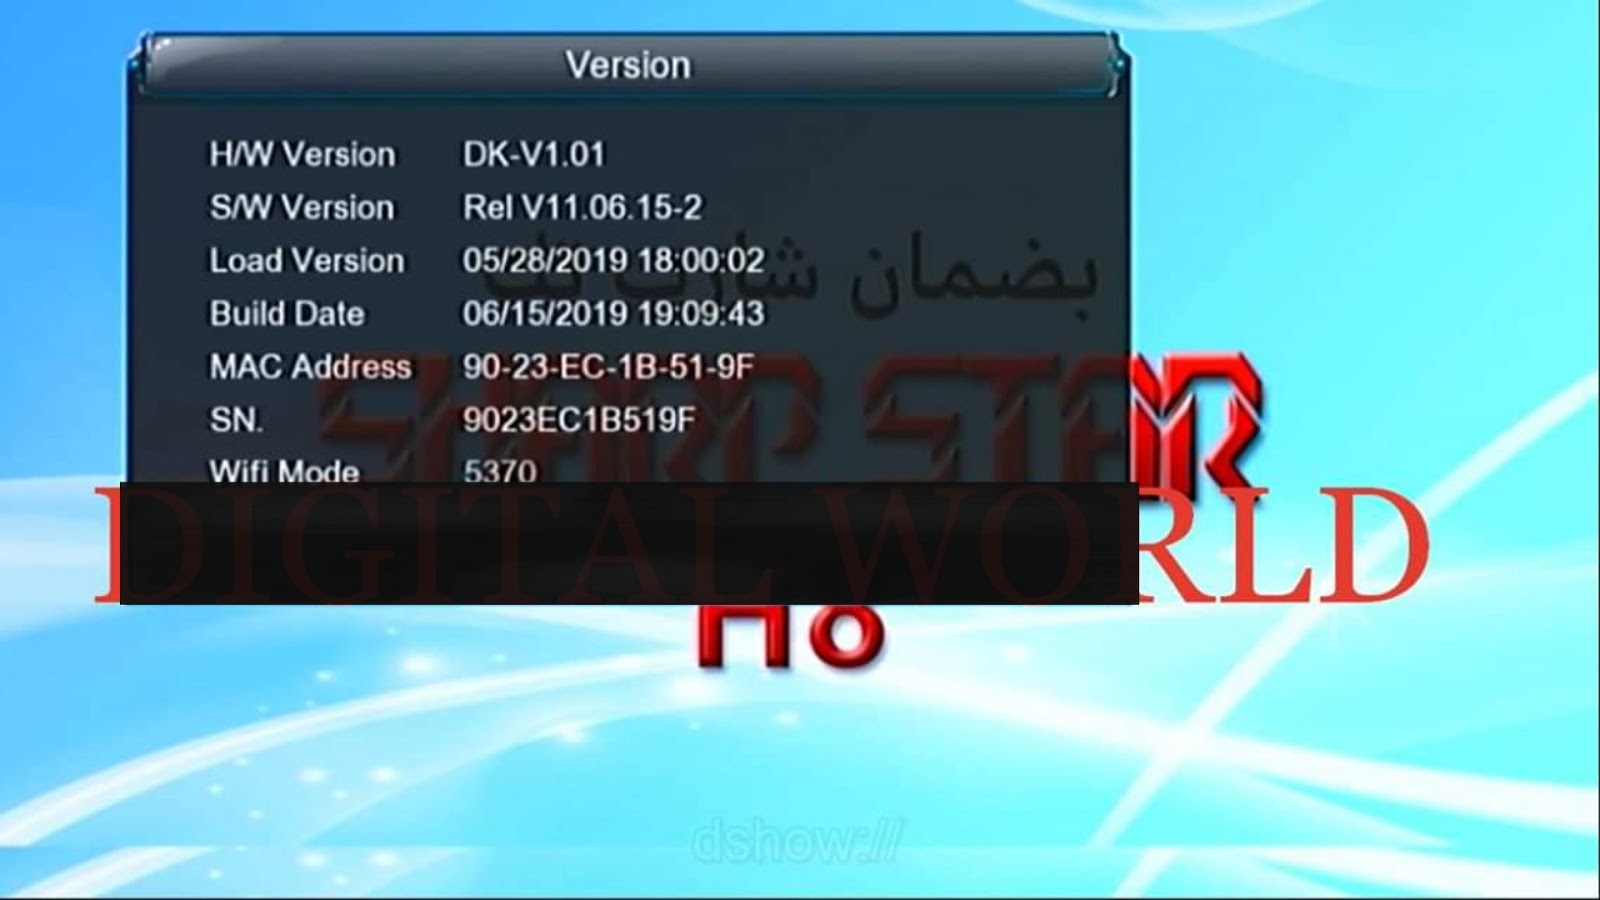 DK-1 01 1506G 8MB Receiver New Software - ALL URDU - Latest Powervu